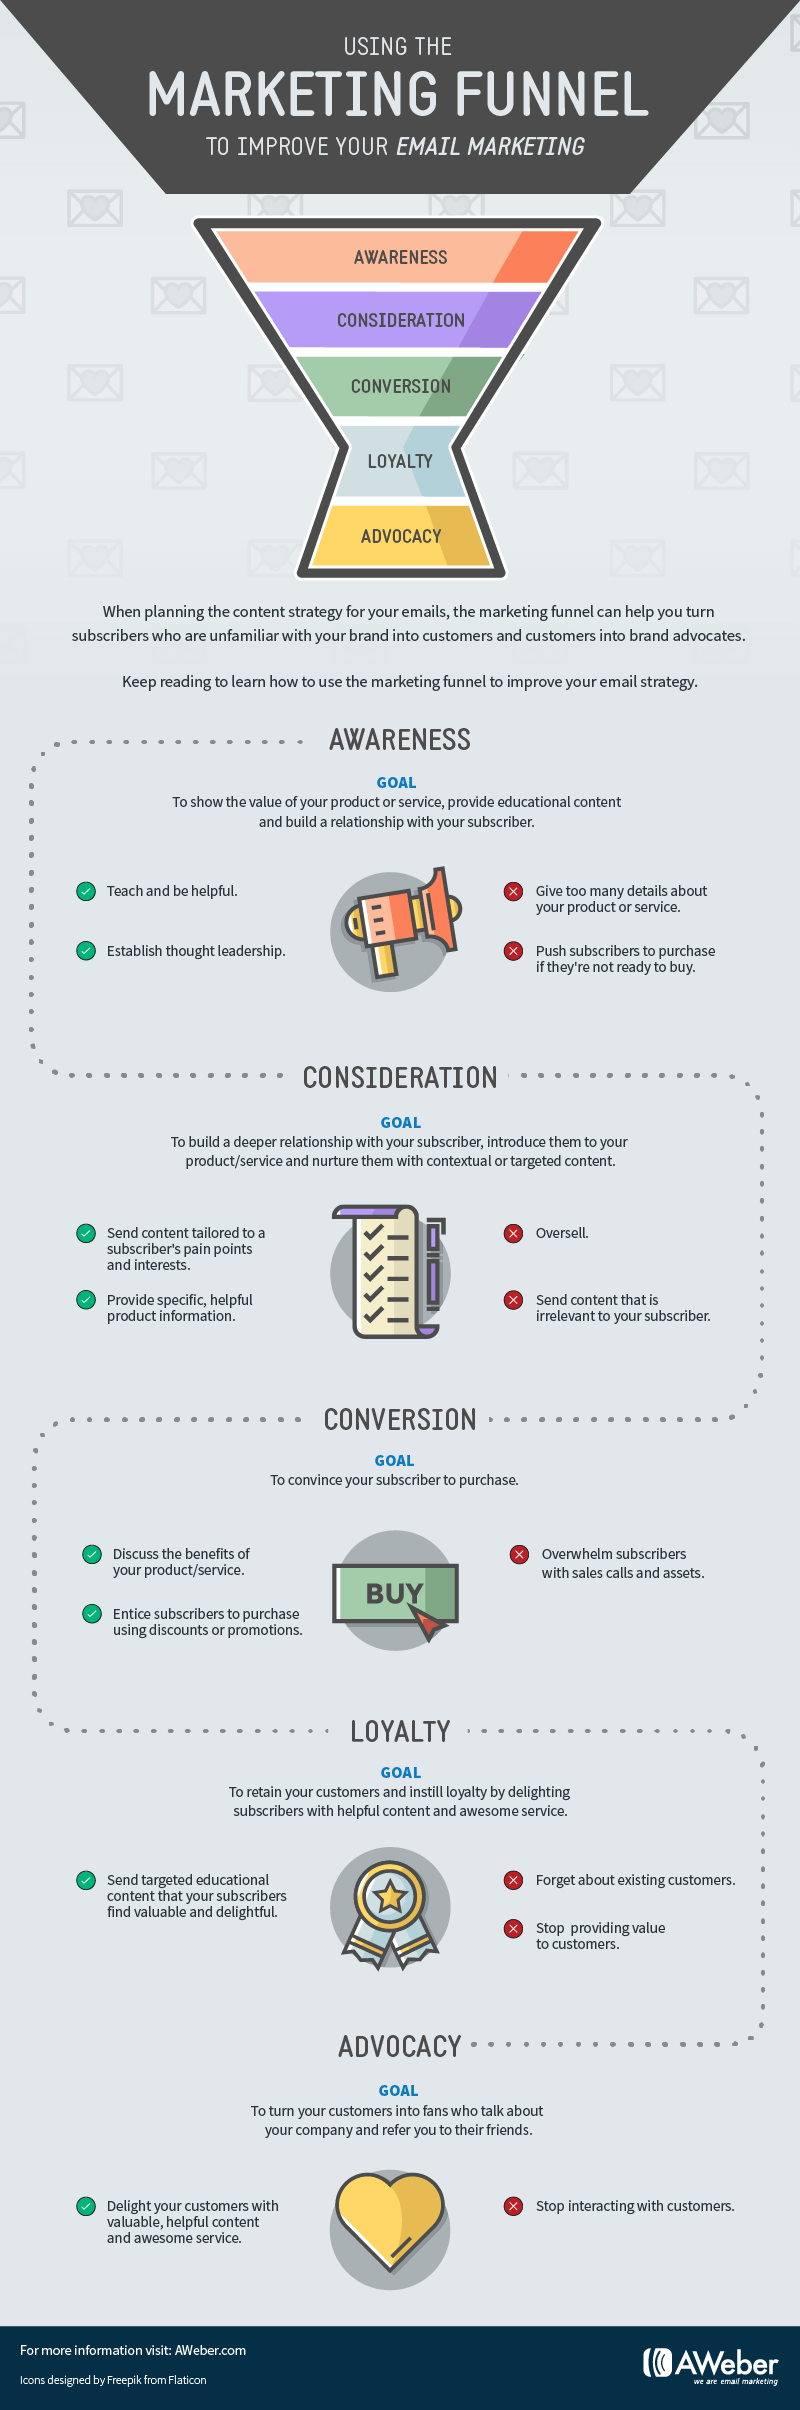 infographic re using the marketing funnel